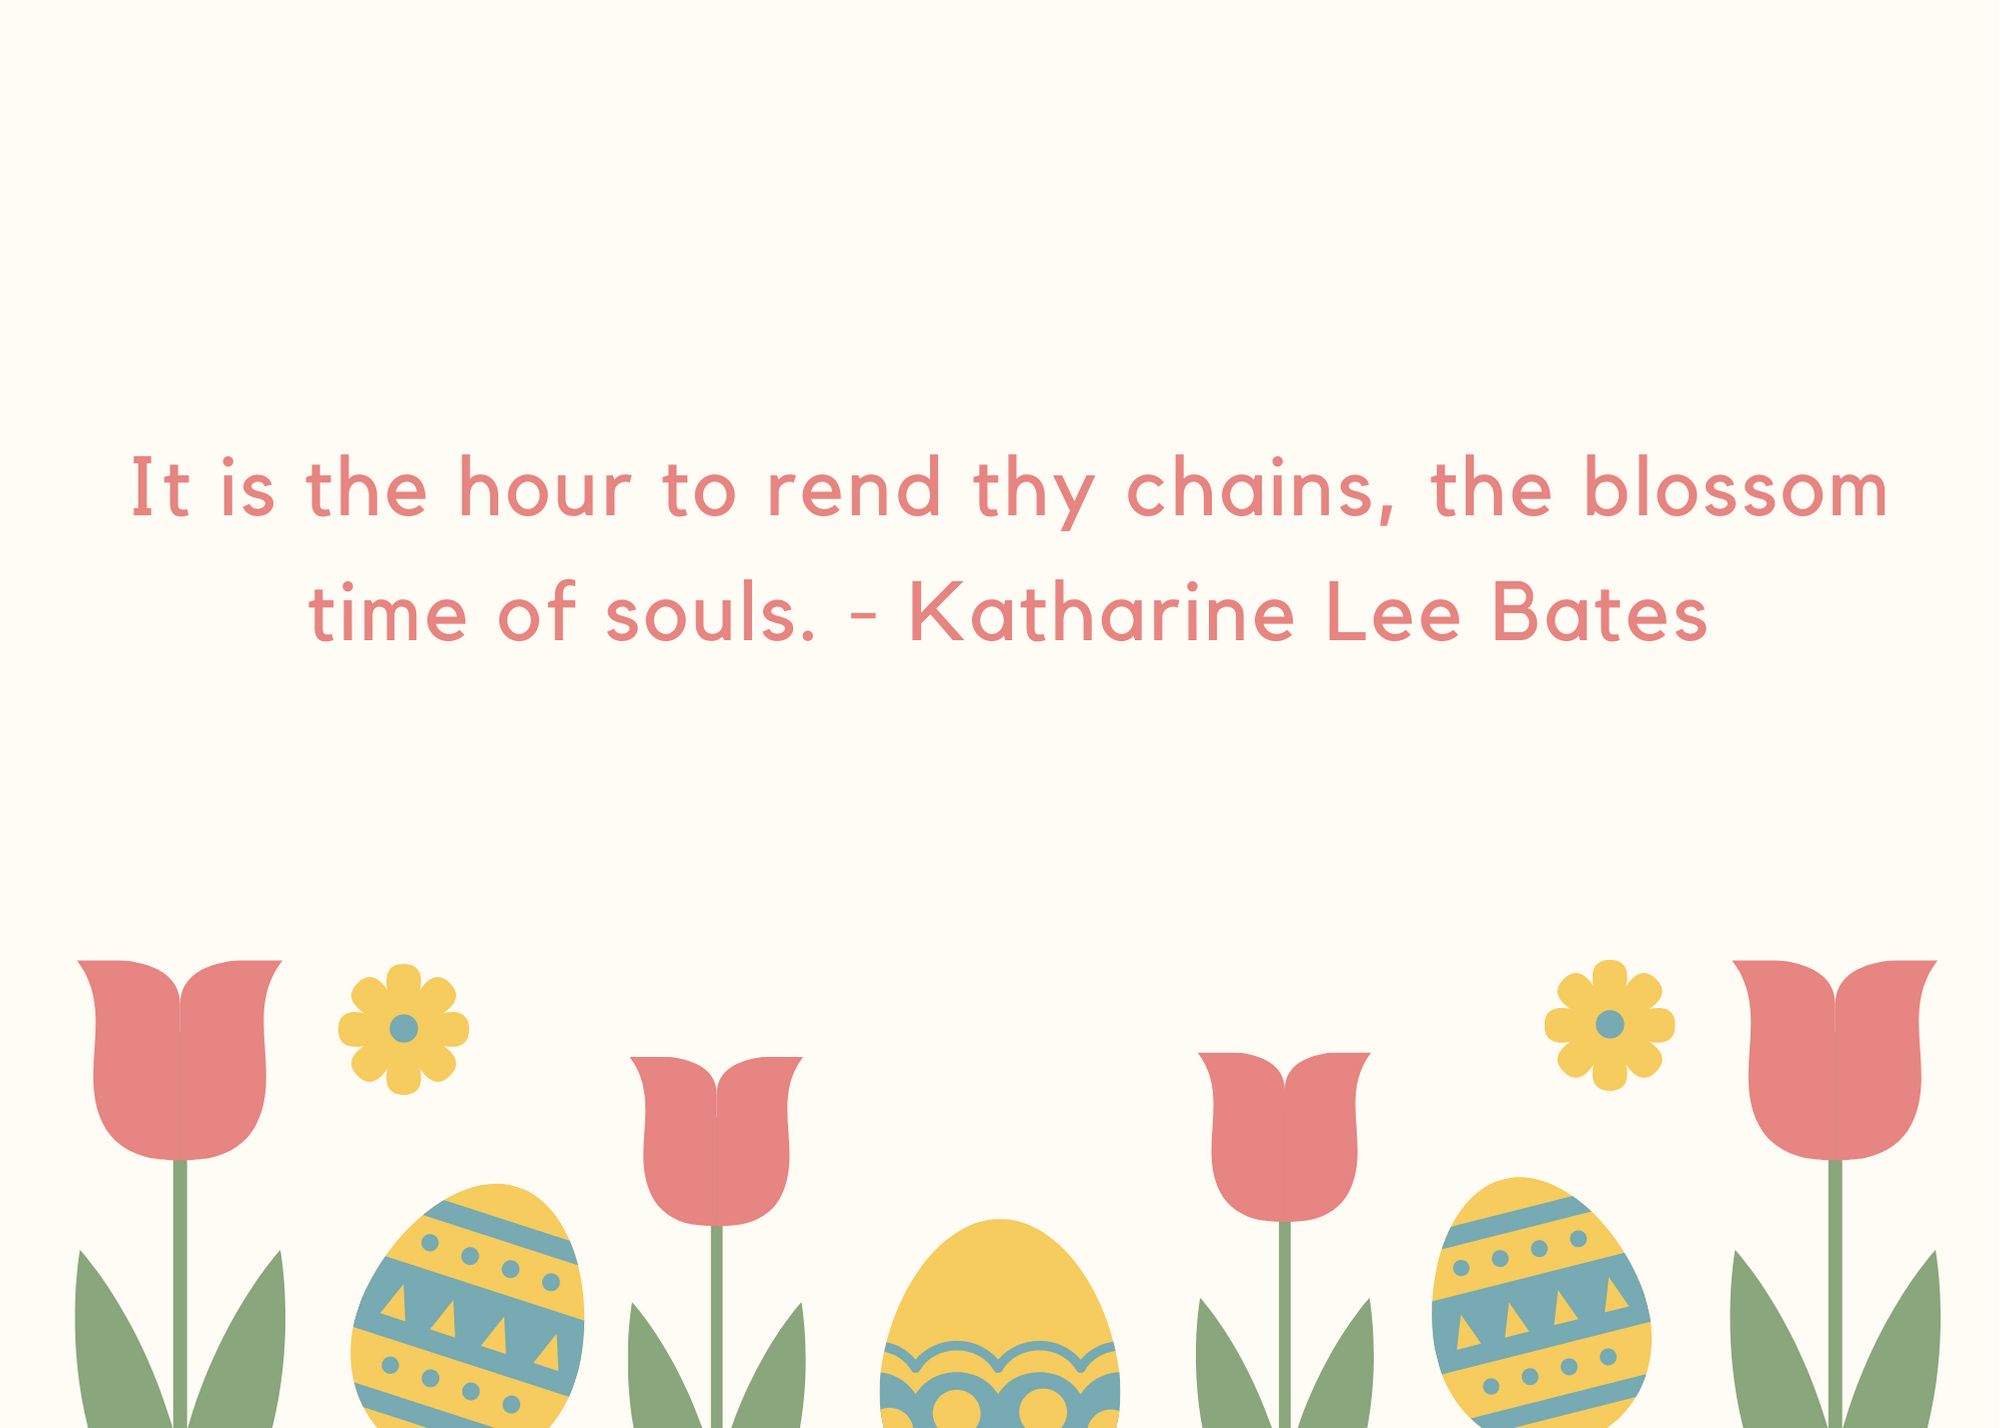 It is the hour to rend thy chains, the blossom time of souls. - Katharine Lee Bates